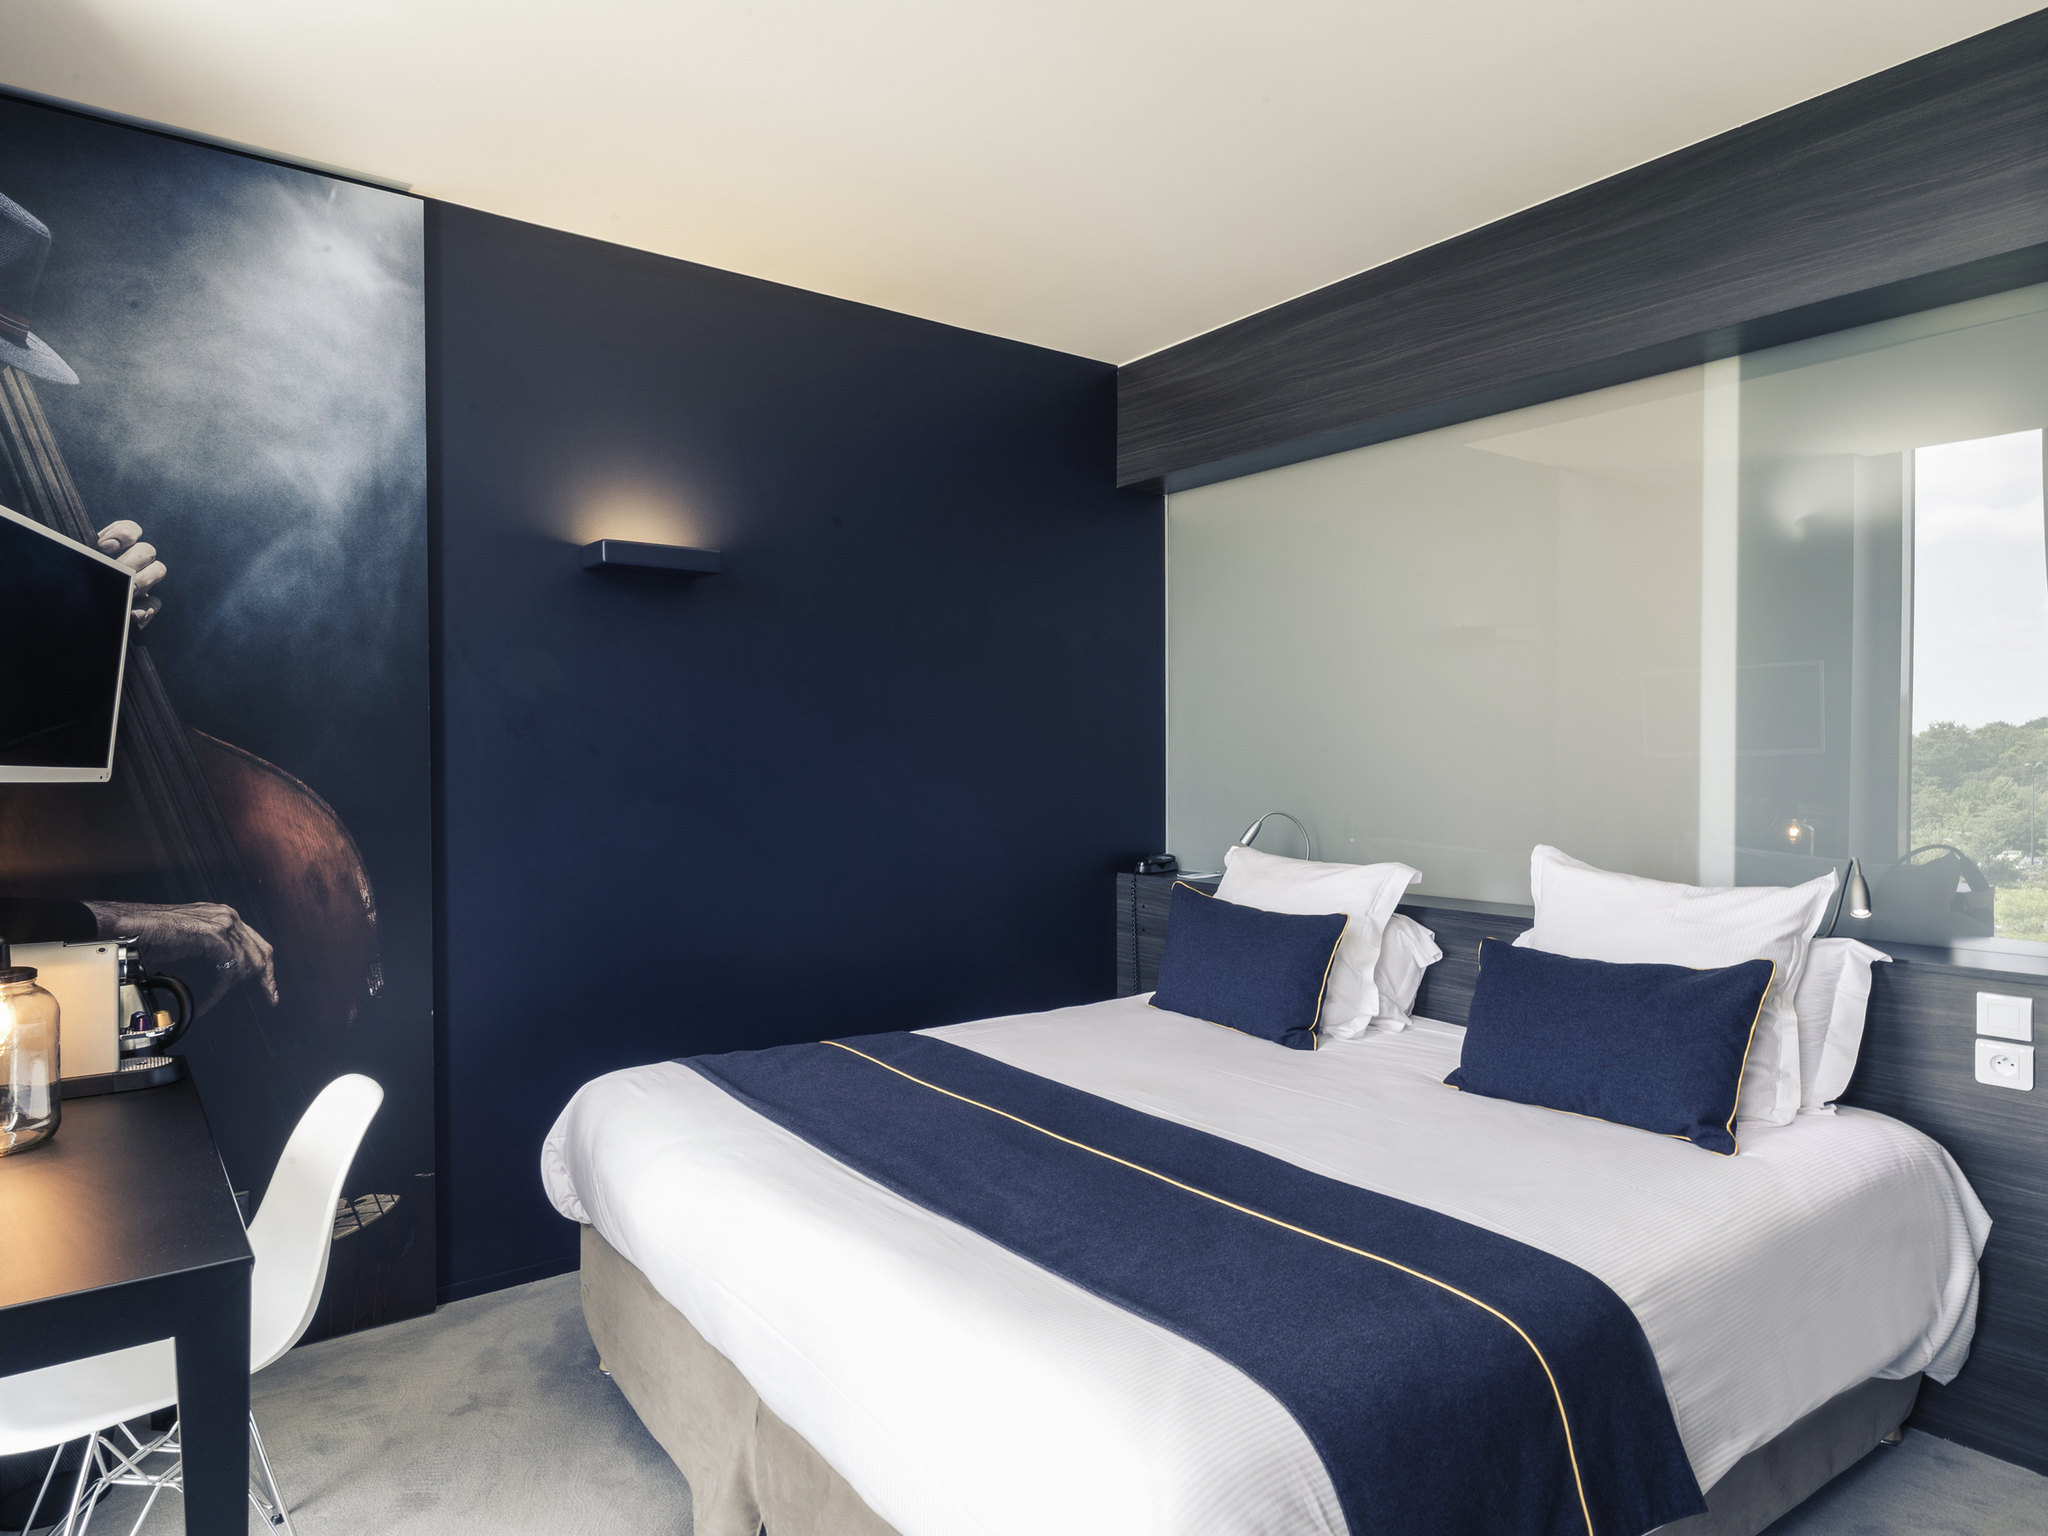 hotel in saint herblain mercure nantes ouest saint herblain zenith hotel. Black Bedroom Furniture Sets. Home Design Ideas